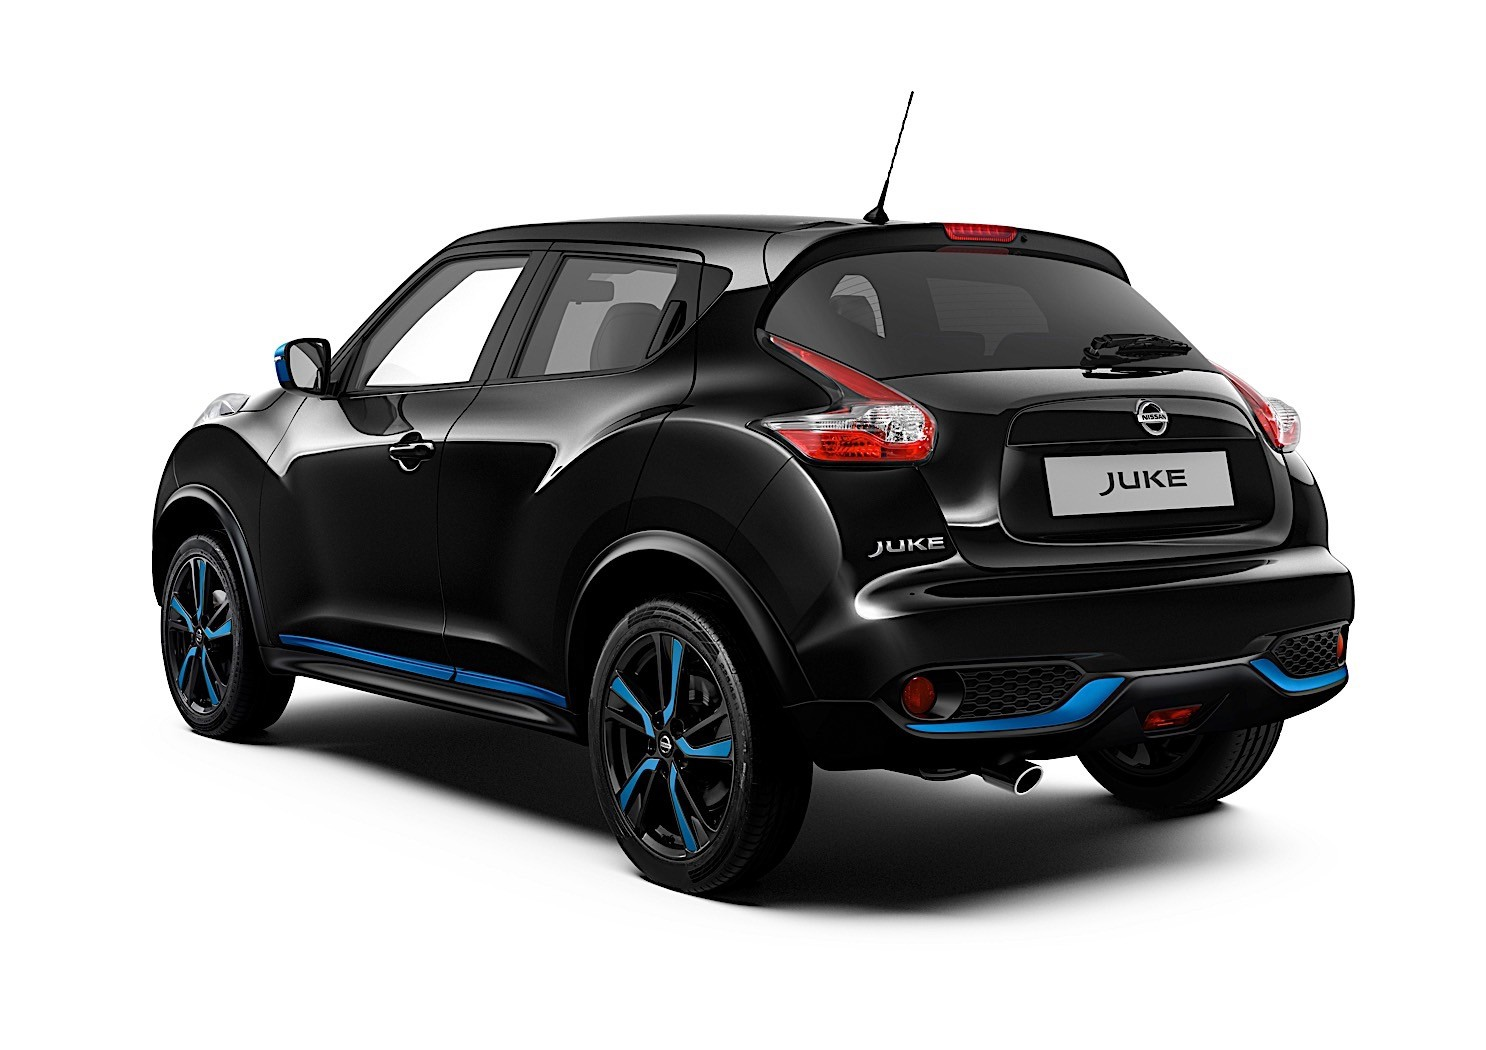 nissan upgrades juke for the 2018 geneva motor show. Black Bedroom Furniture Sets. Home Design Ideas